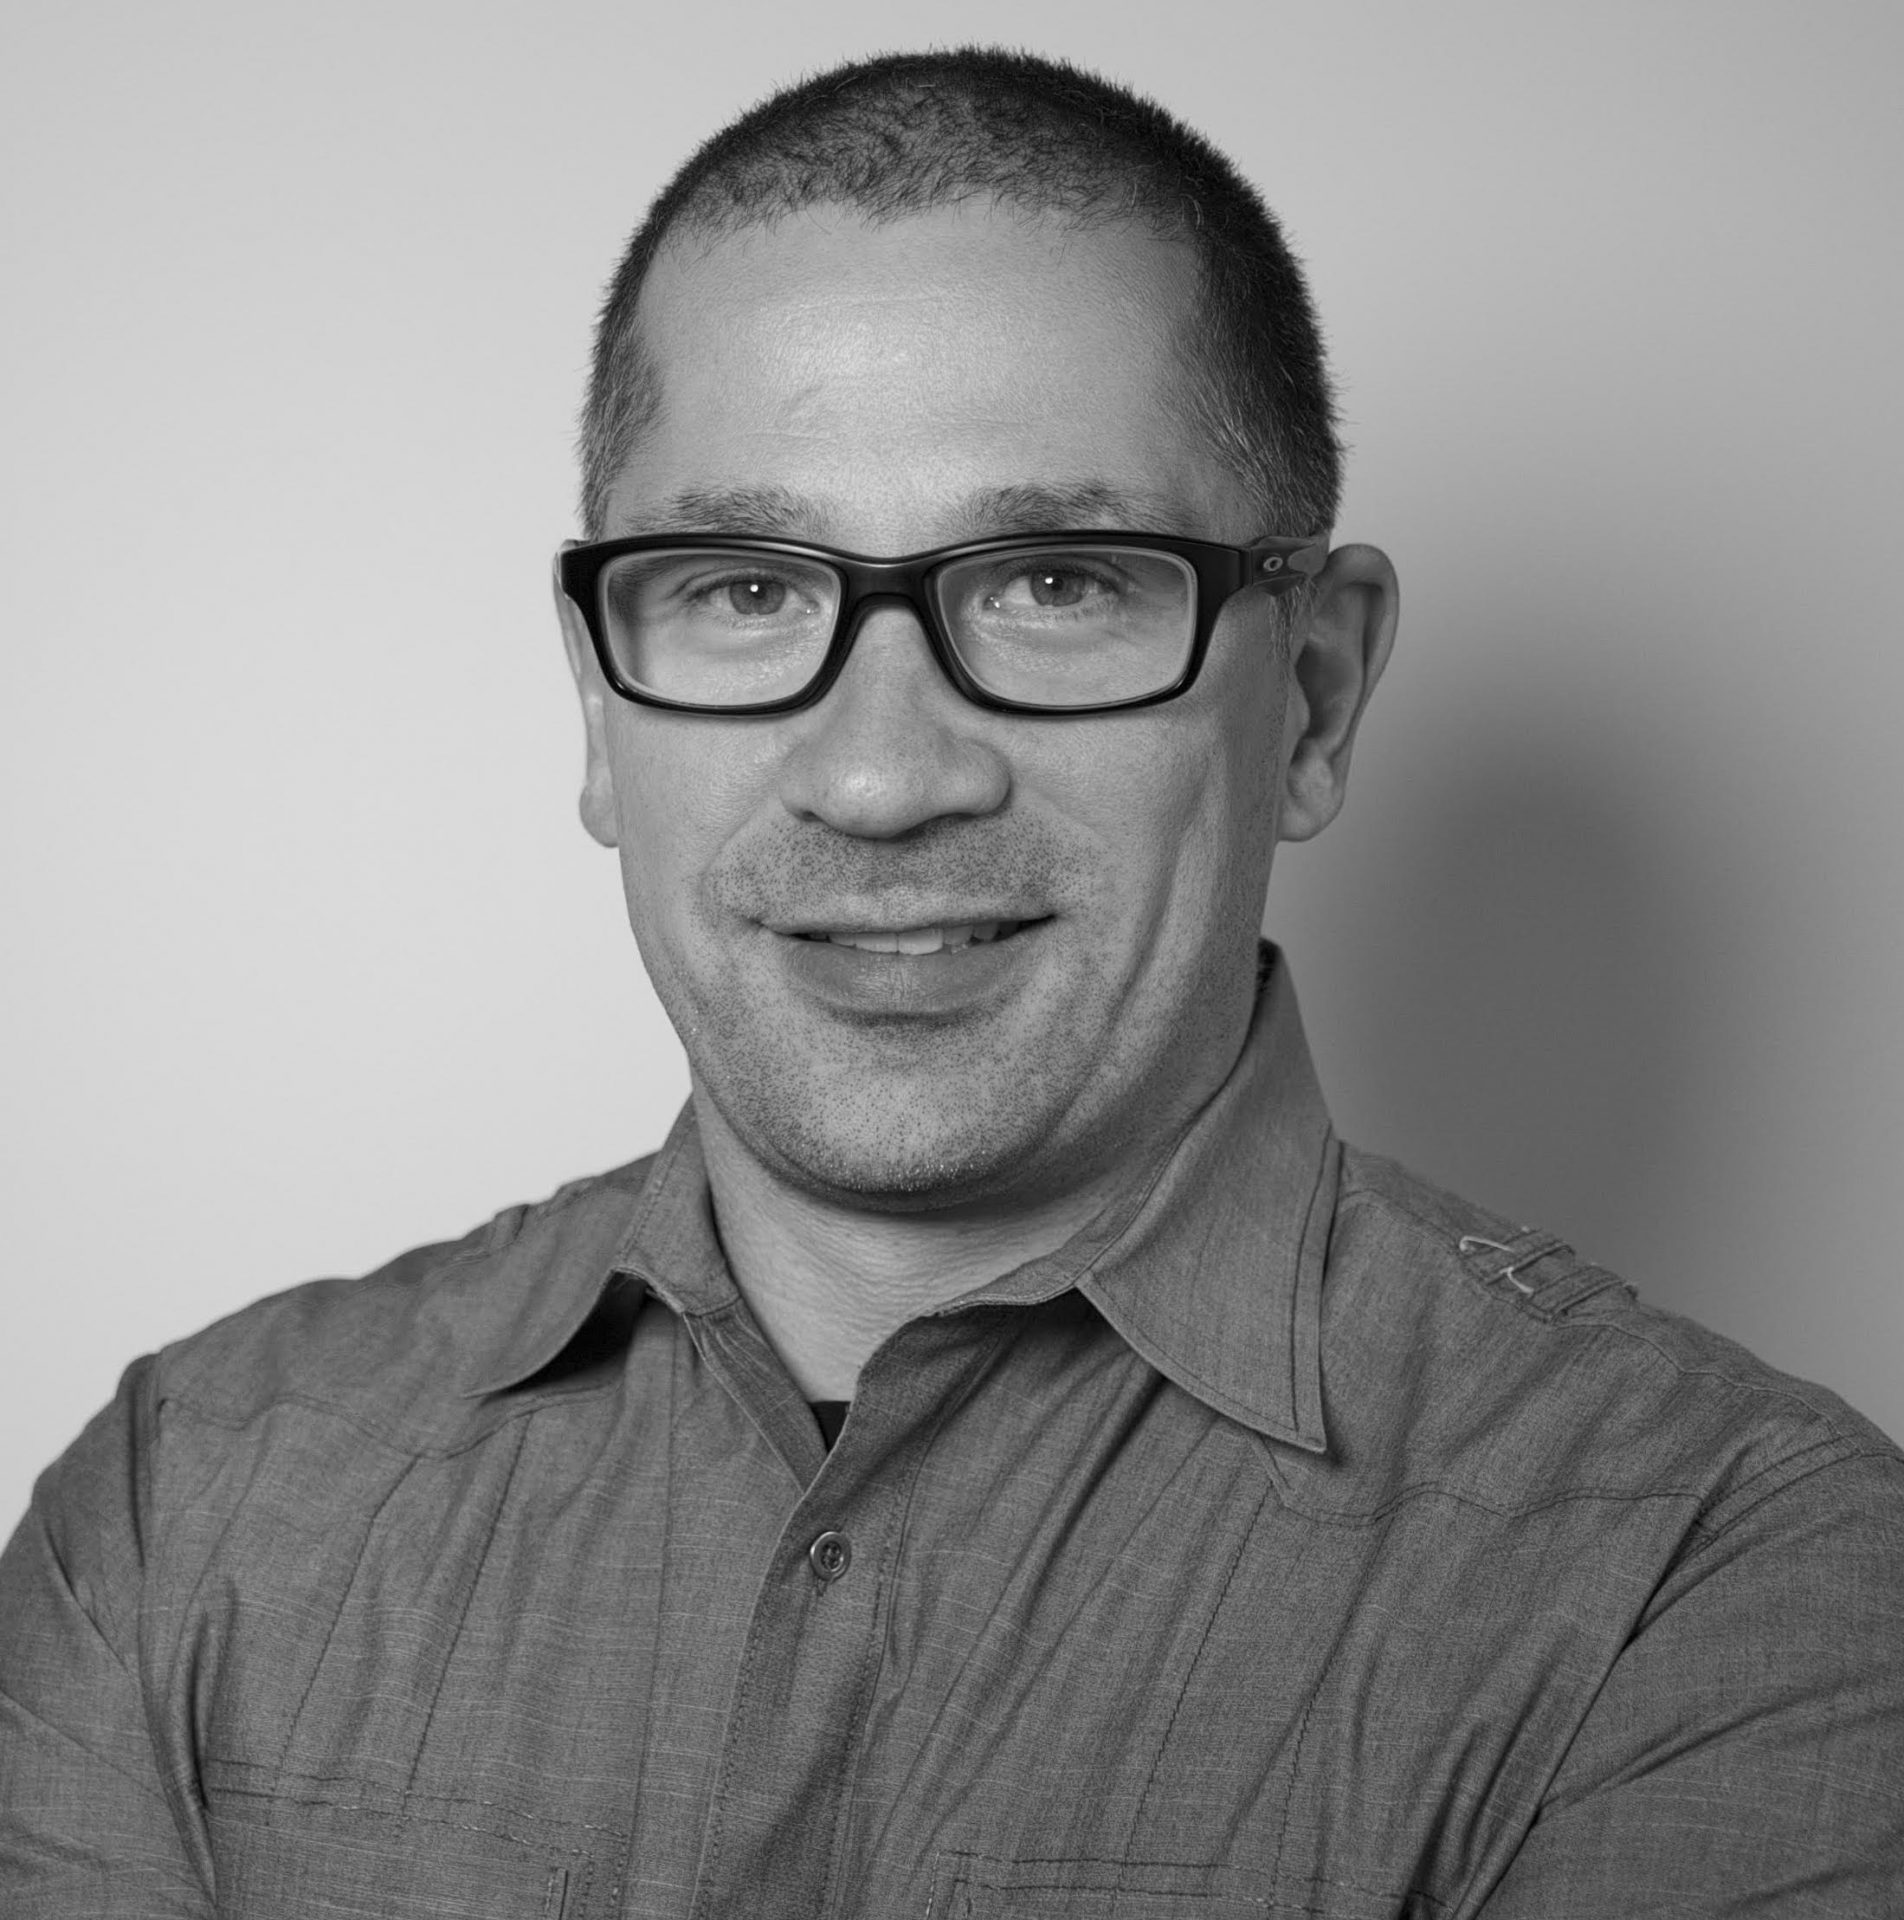 Vouched appoints Steve McQuade as Chief Technology Officer